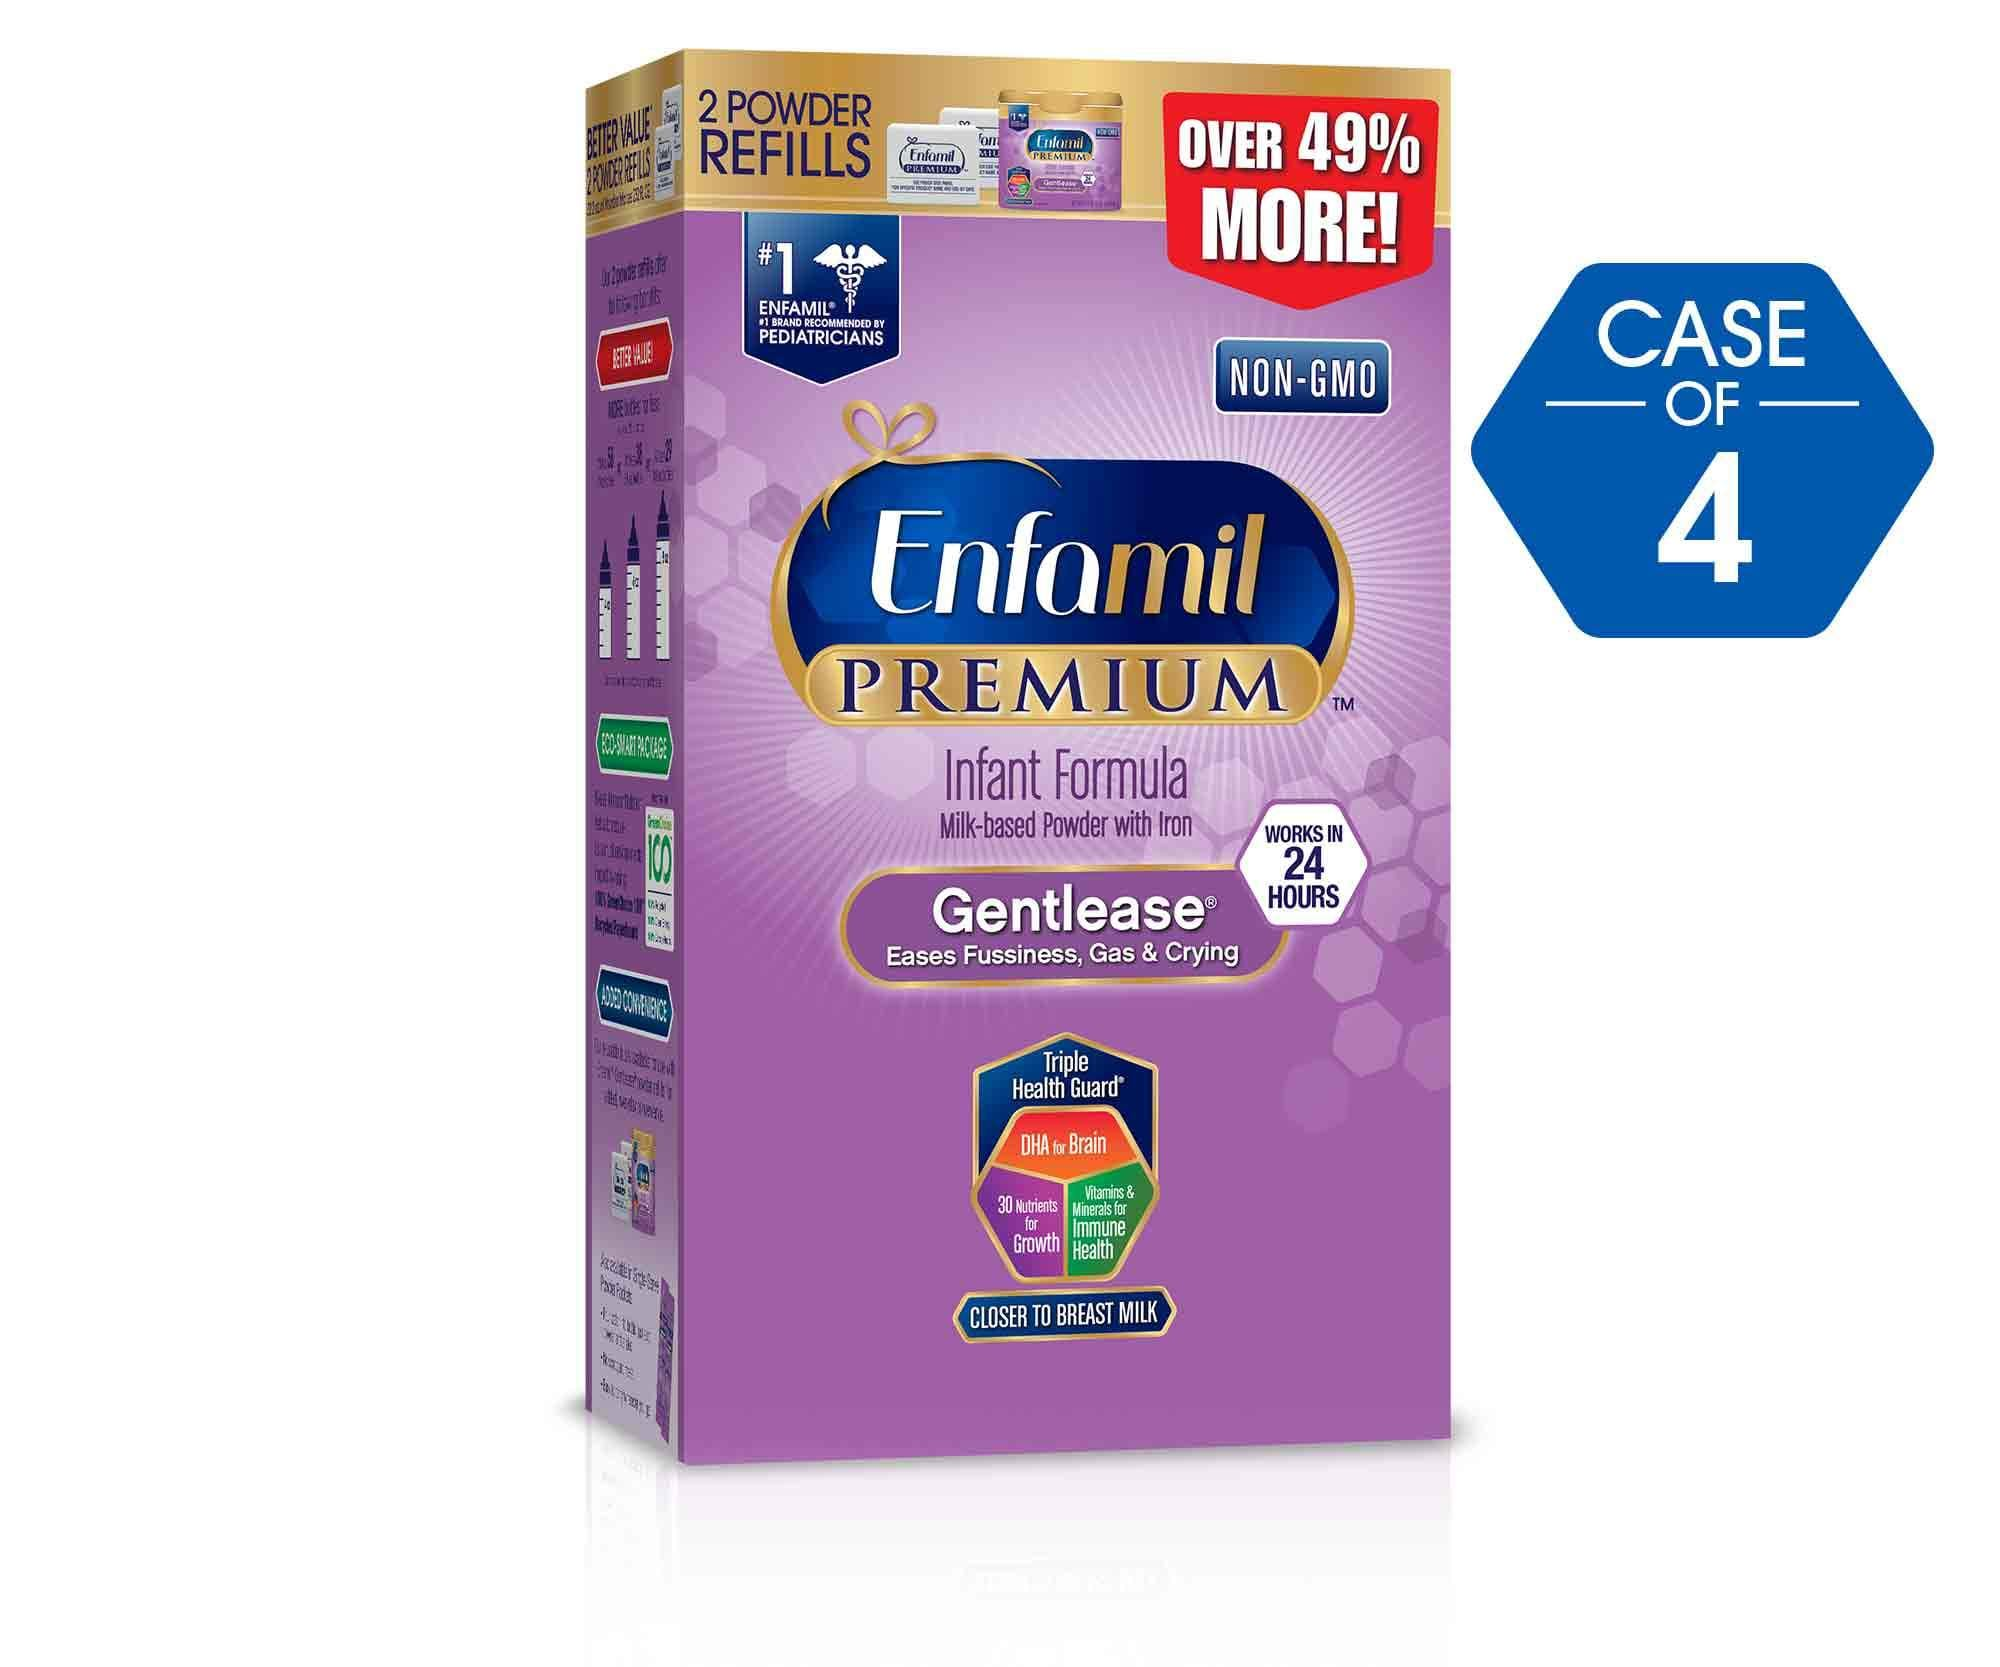 Enfamil Formula 70-80% off Second Refill Boxes $160.75